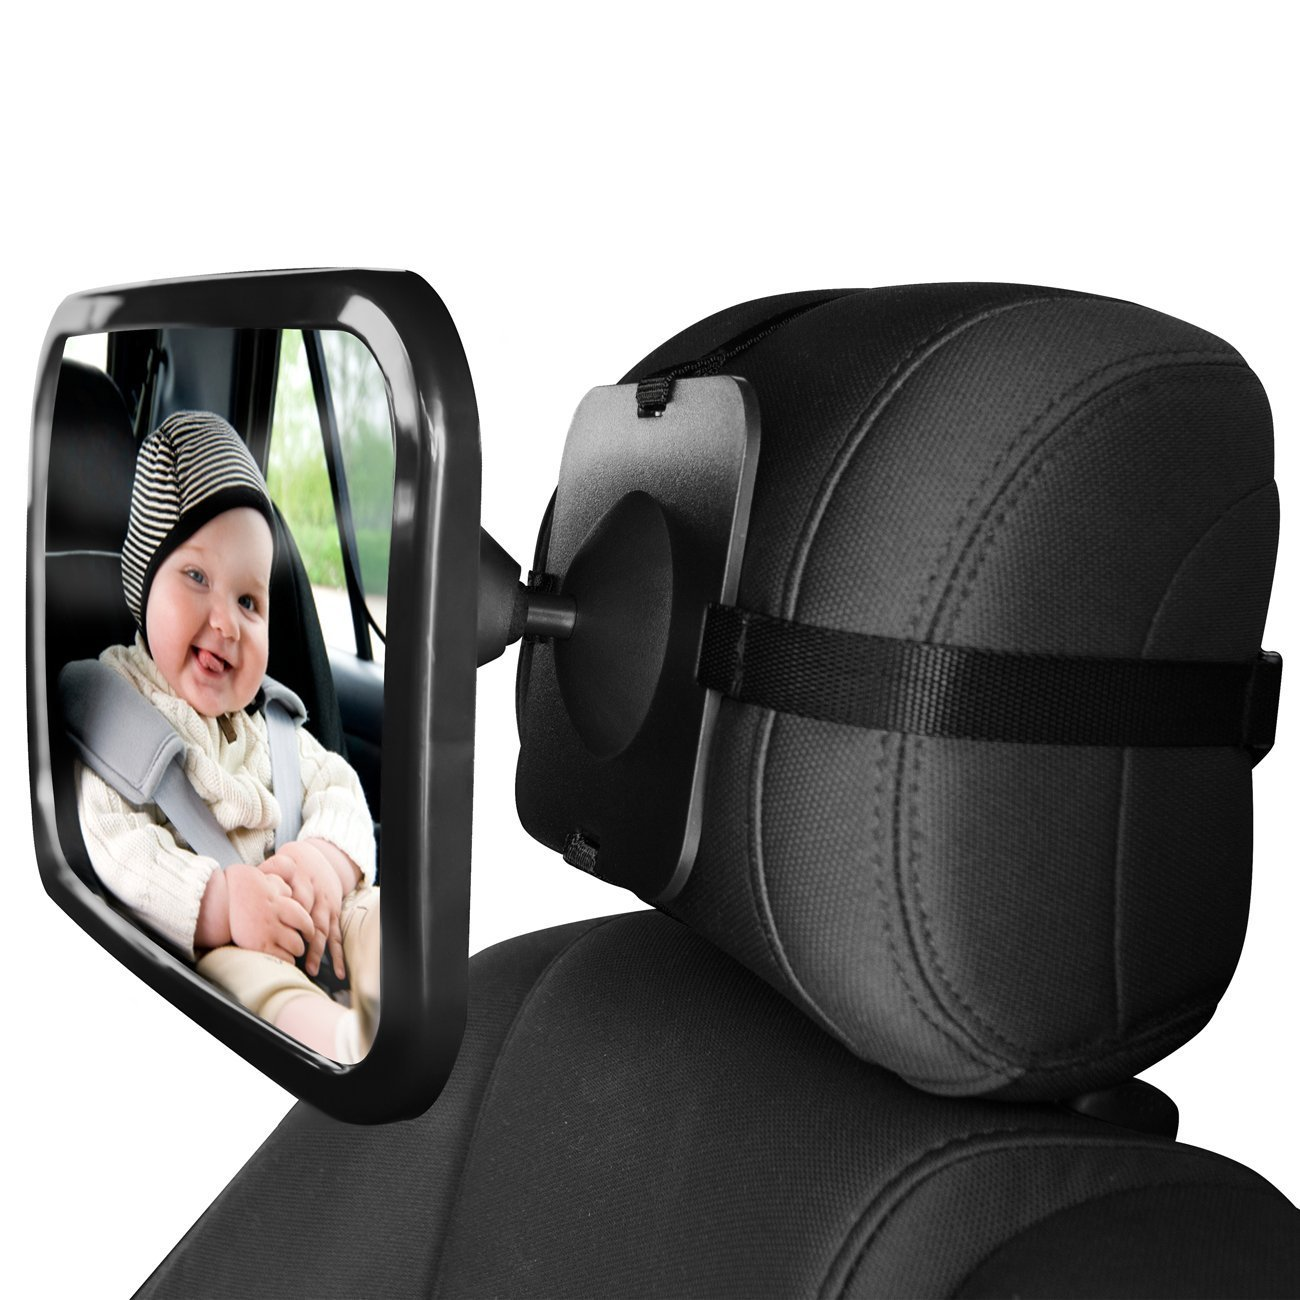 JOJOO Baby Car Mirror - Back Seat Rear View Infant Car Mirror - Wide Convex Rear Facing Mirrors - 100% Safety & Completely Shatterproof, MA010 by JOJOO